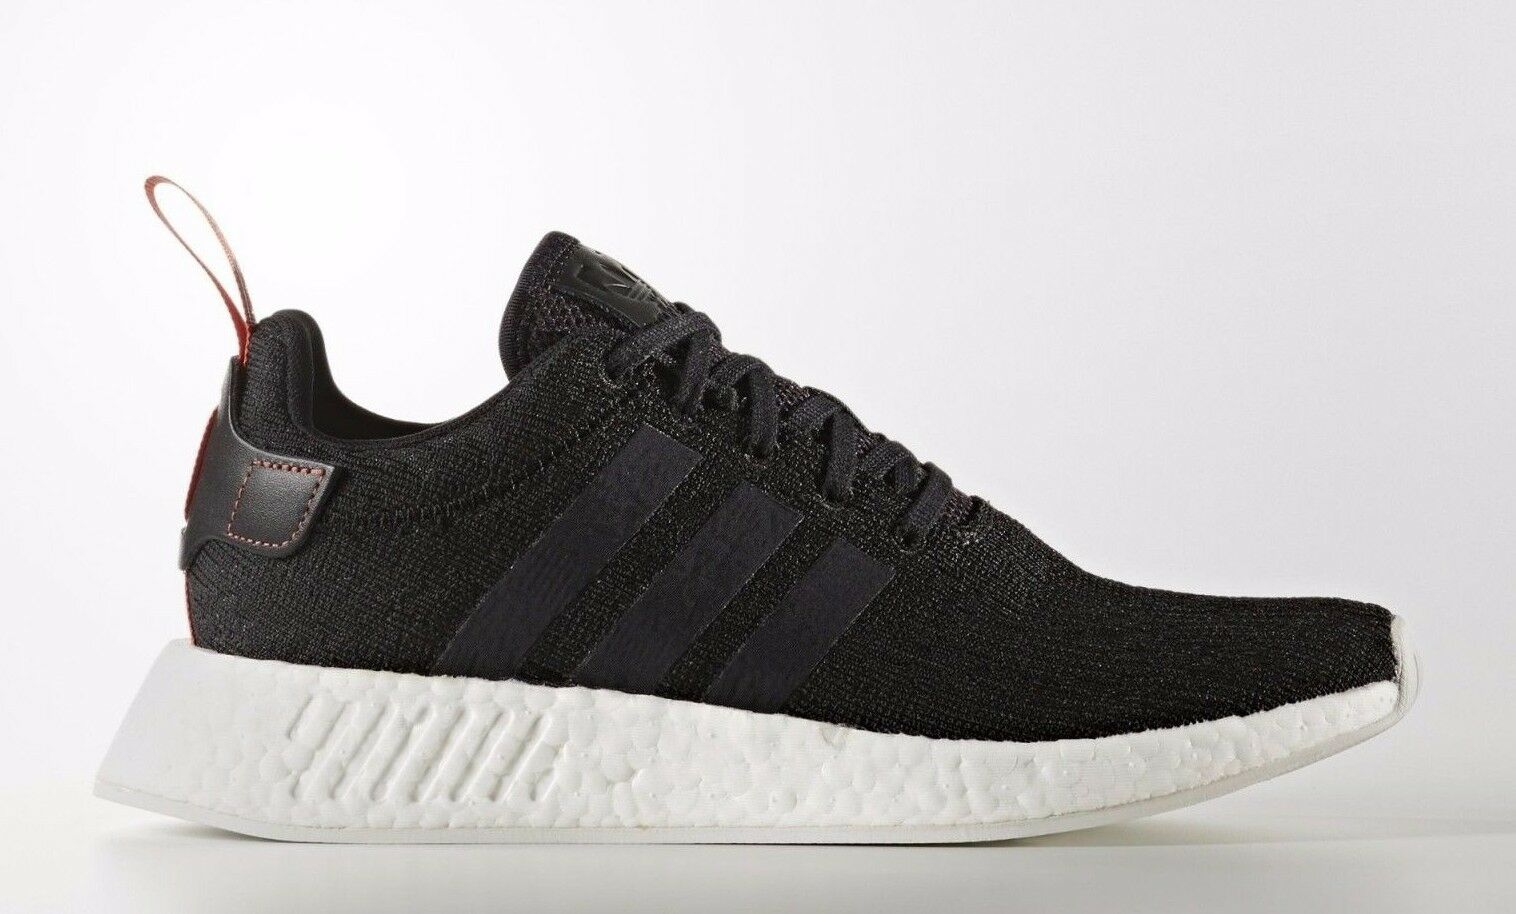 a26a99e36b5adc Mens adidas NMD R2 Core Black Future Harvest White Cg3384 US 8.5 for ...